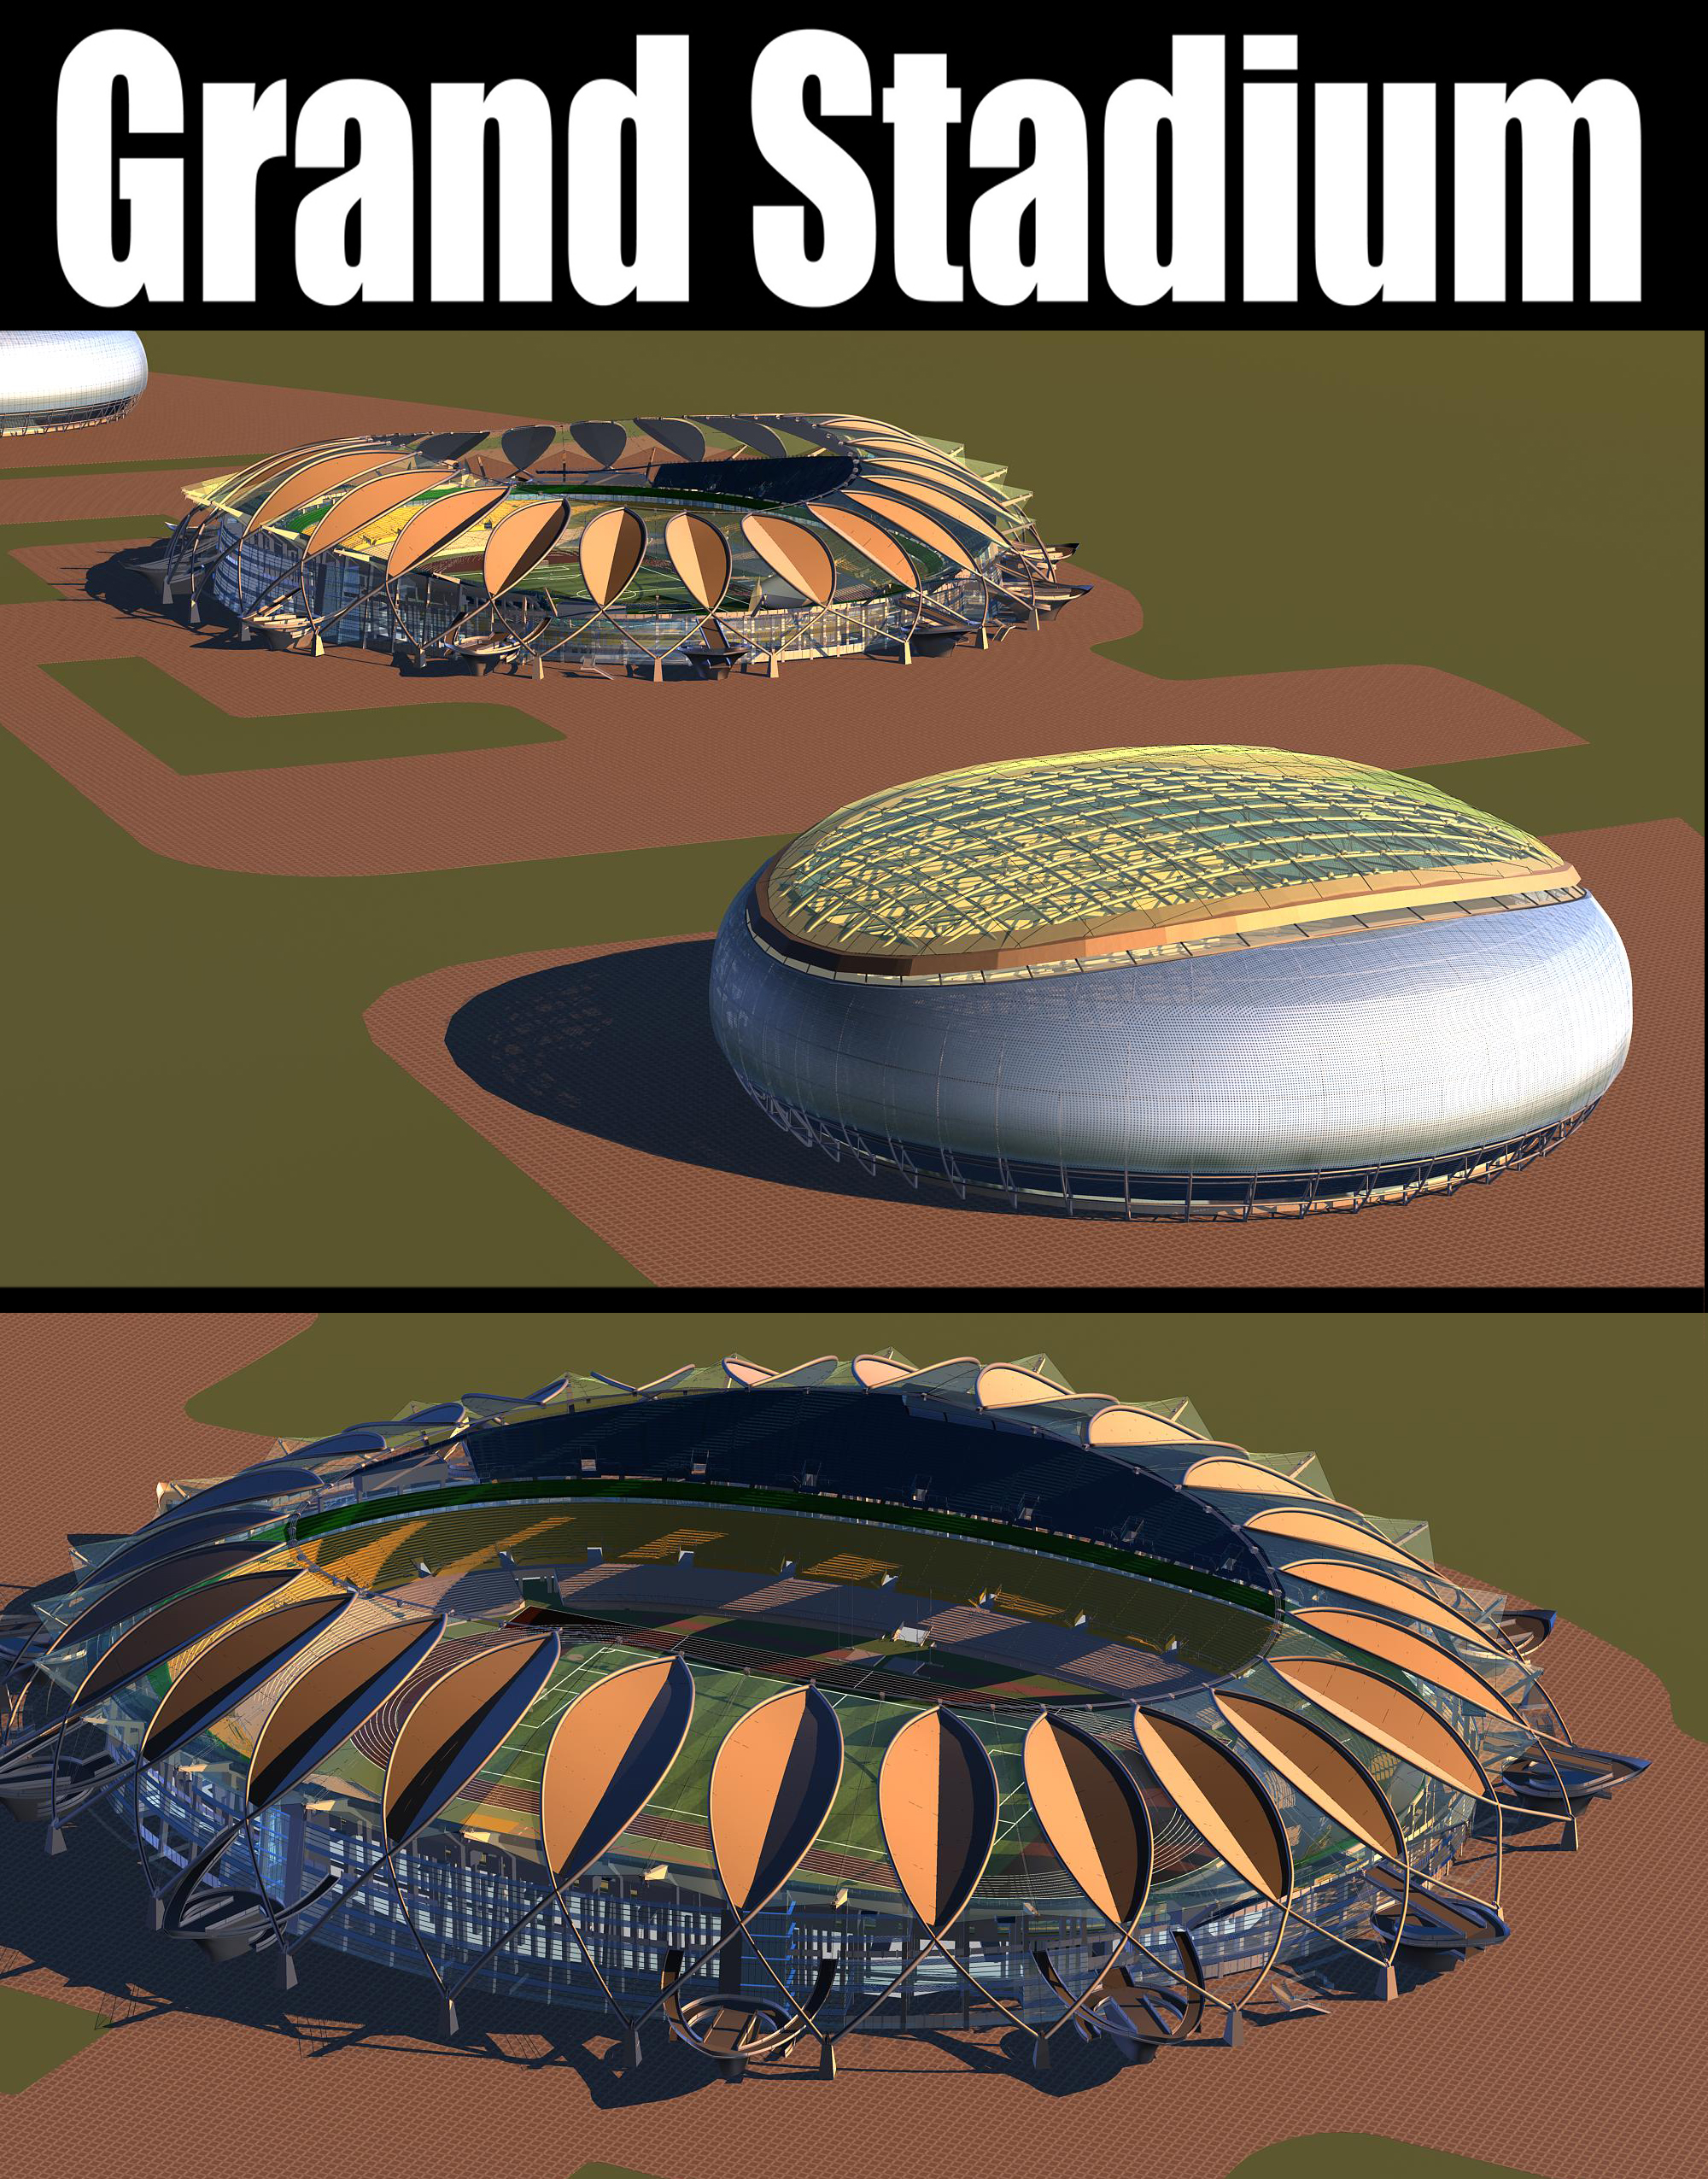 Grand Stadium 008 3d líkan 3ds max 98265